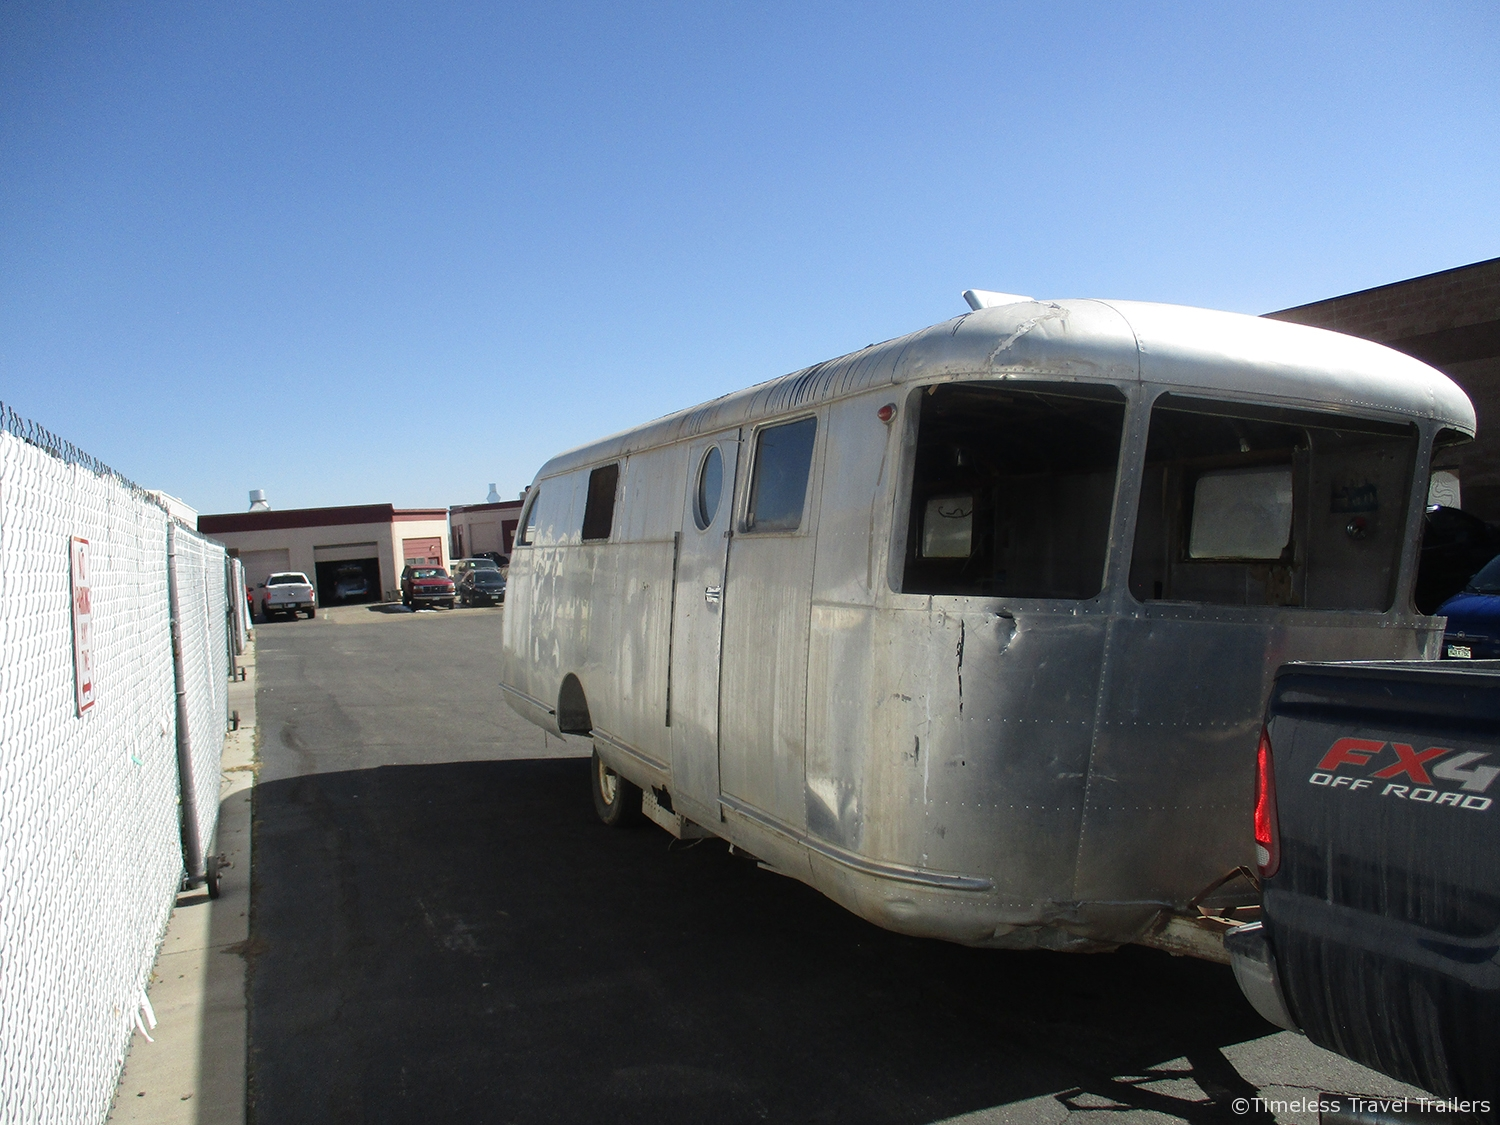 Rv For Sale Under 5000 >> FOR SALE - 1949 - 25' Spartan Manor - Timeless Travel Trailers